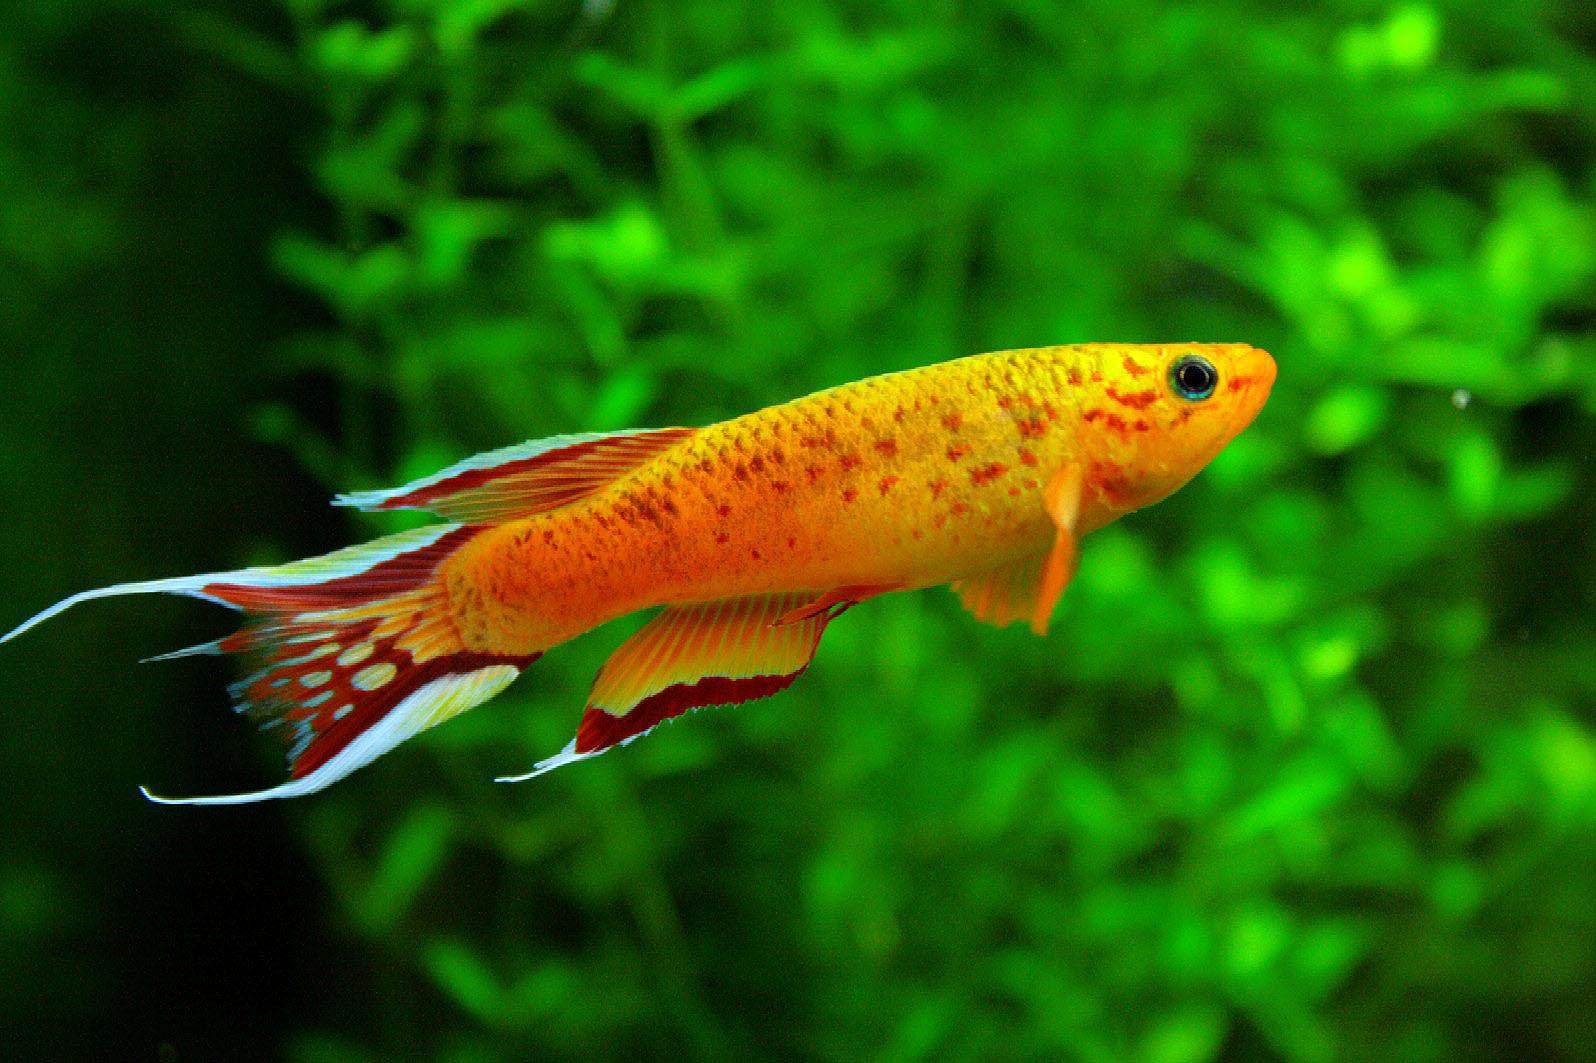 Freshwater aquarium exotic fish aquarium design ideas for Rare freshwater aquarium fish